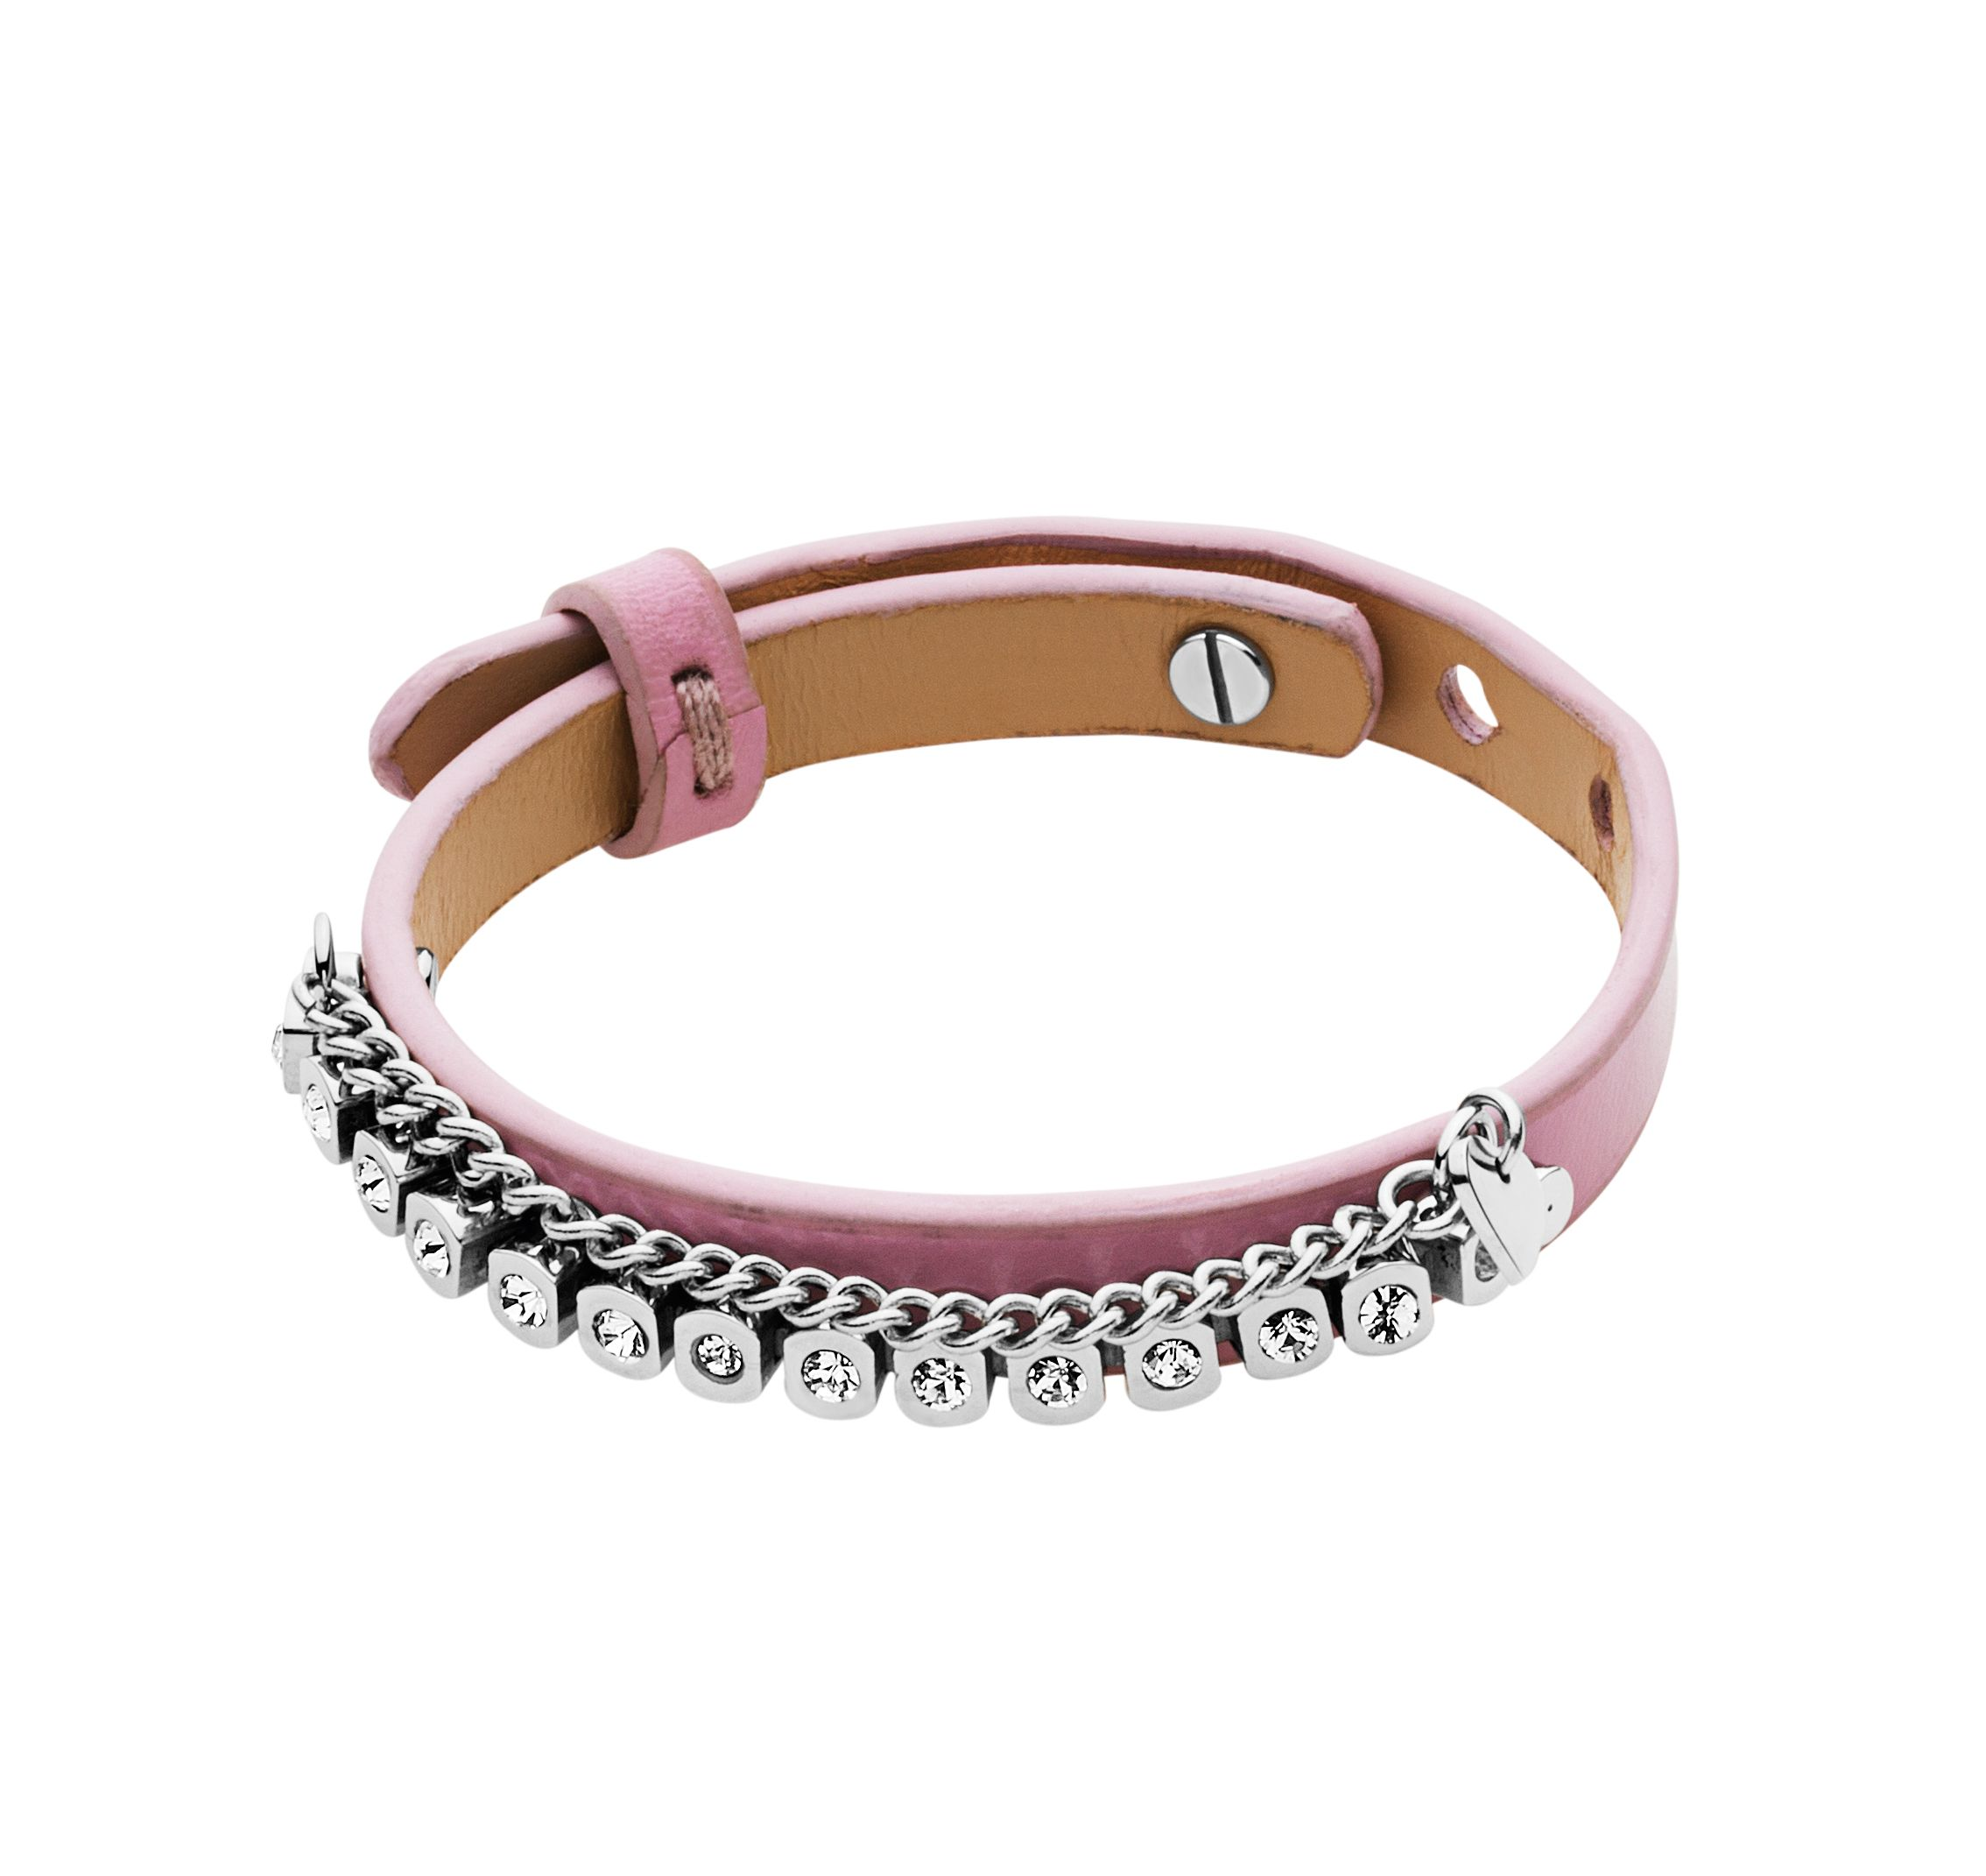 Titania rose leather bracelet